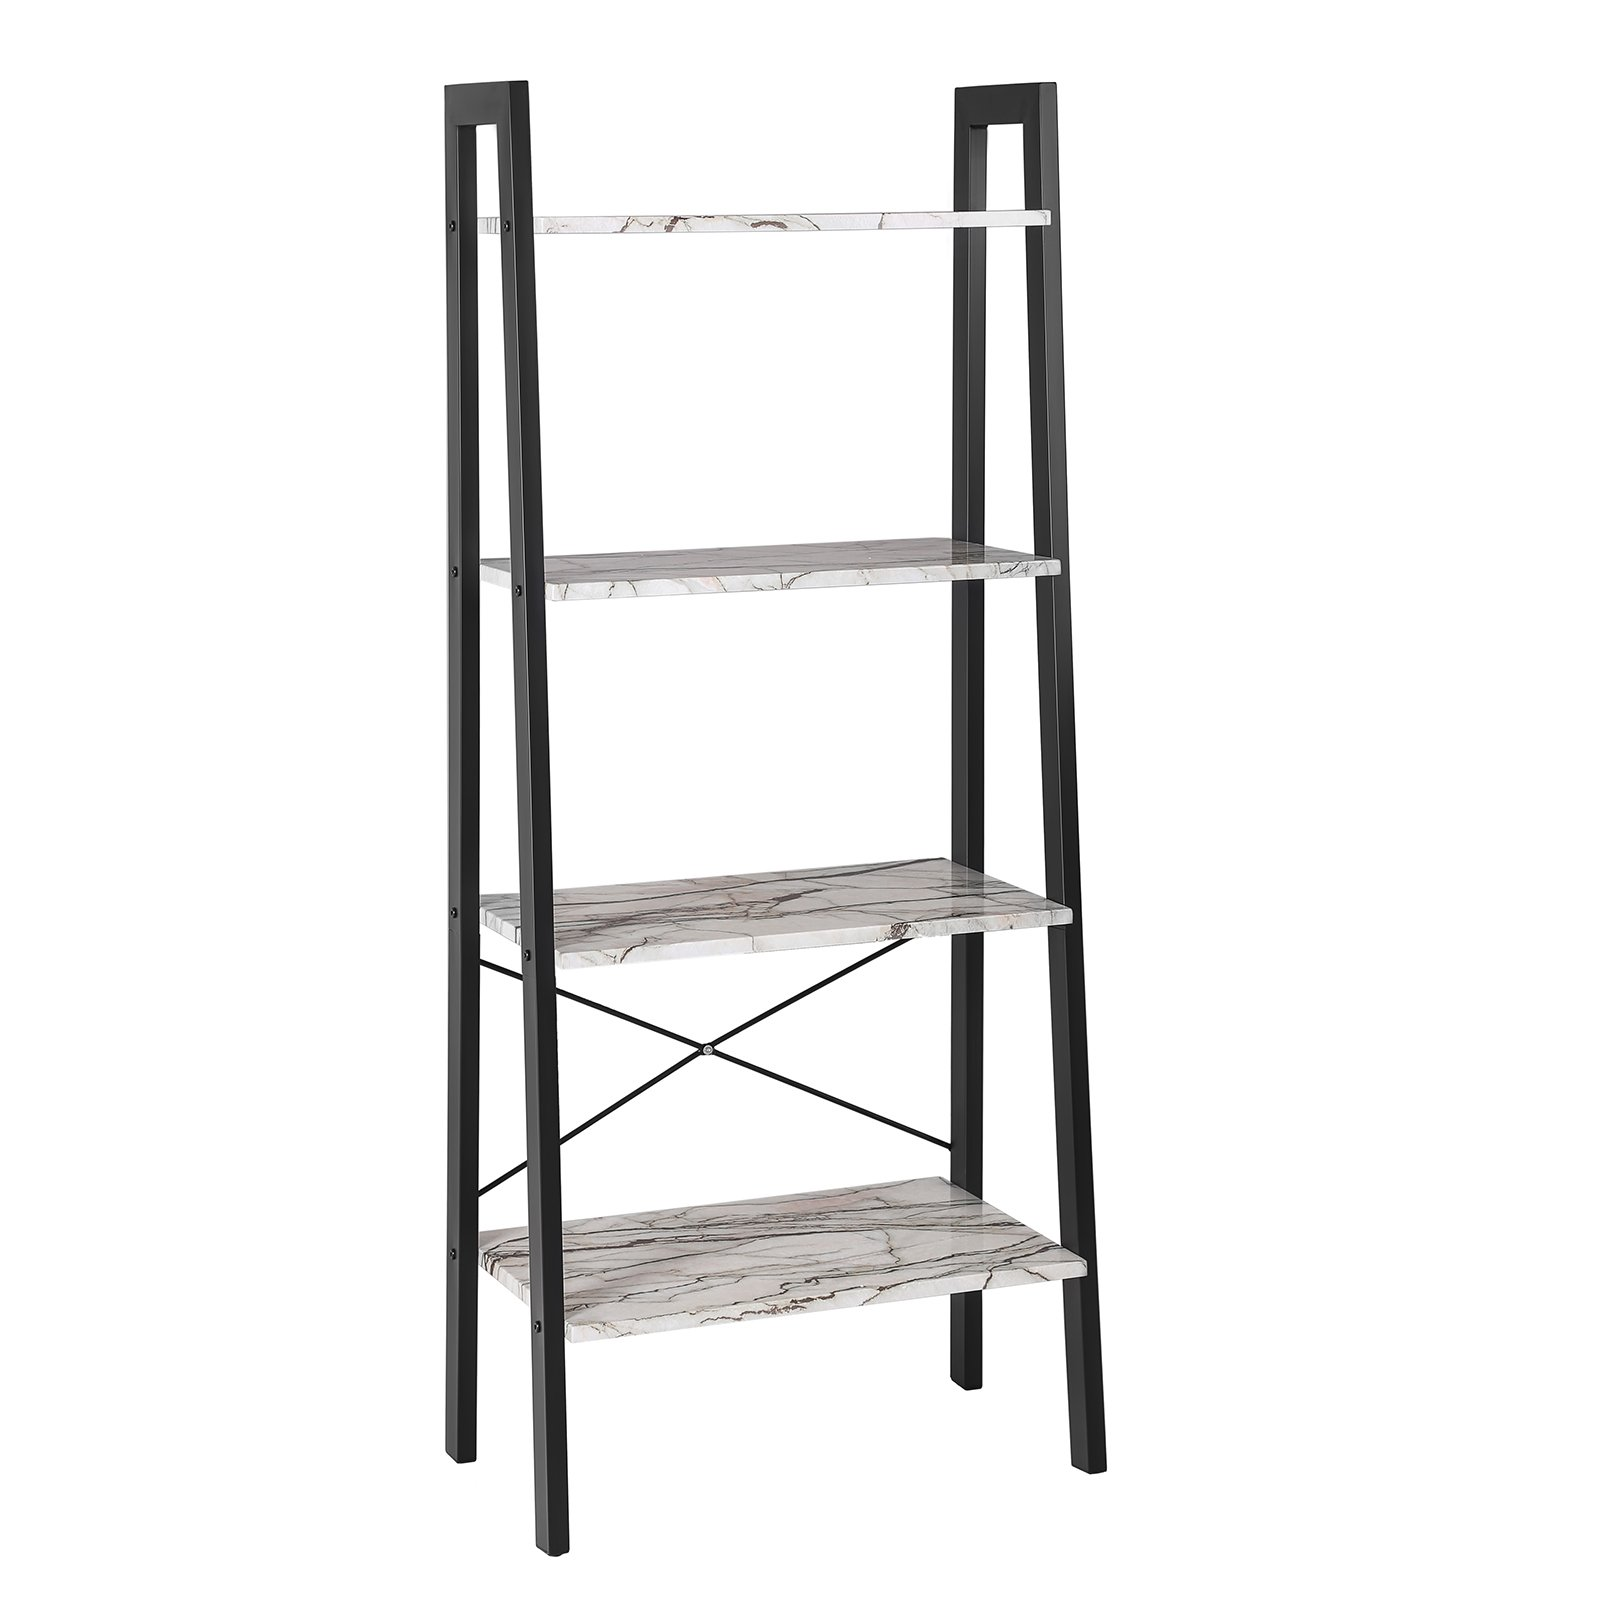 SONGMICS Storage Rack, 4-Tier Ladder Shelf, Shelving Unit for Living Room, Kitchen, Faux Marble, ULLS44BW